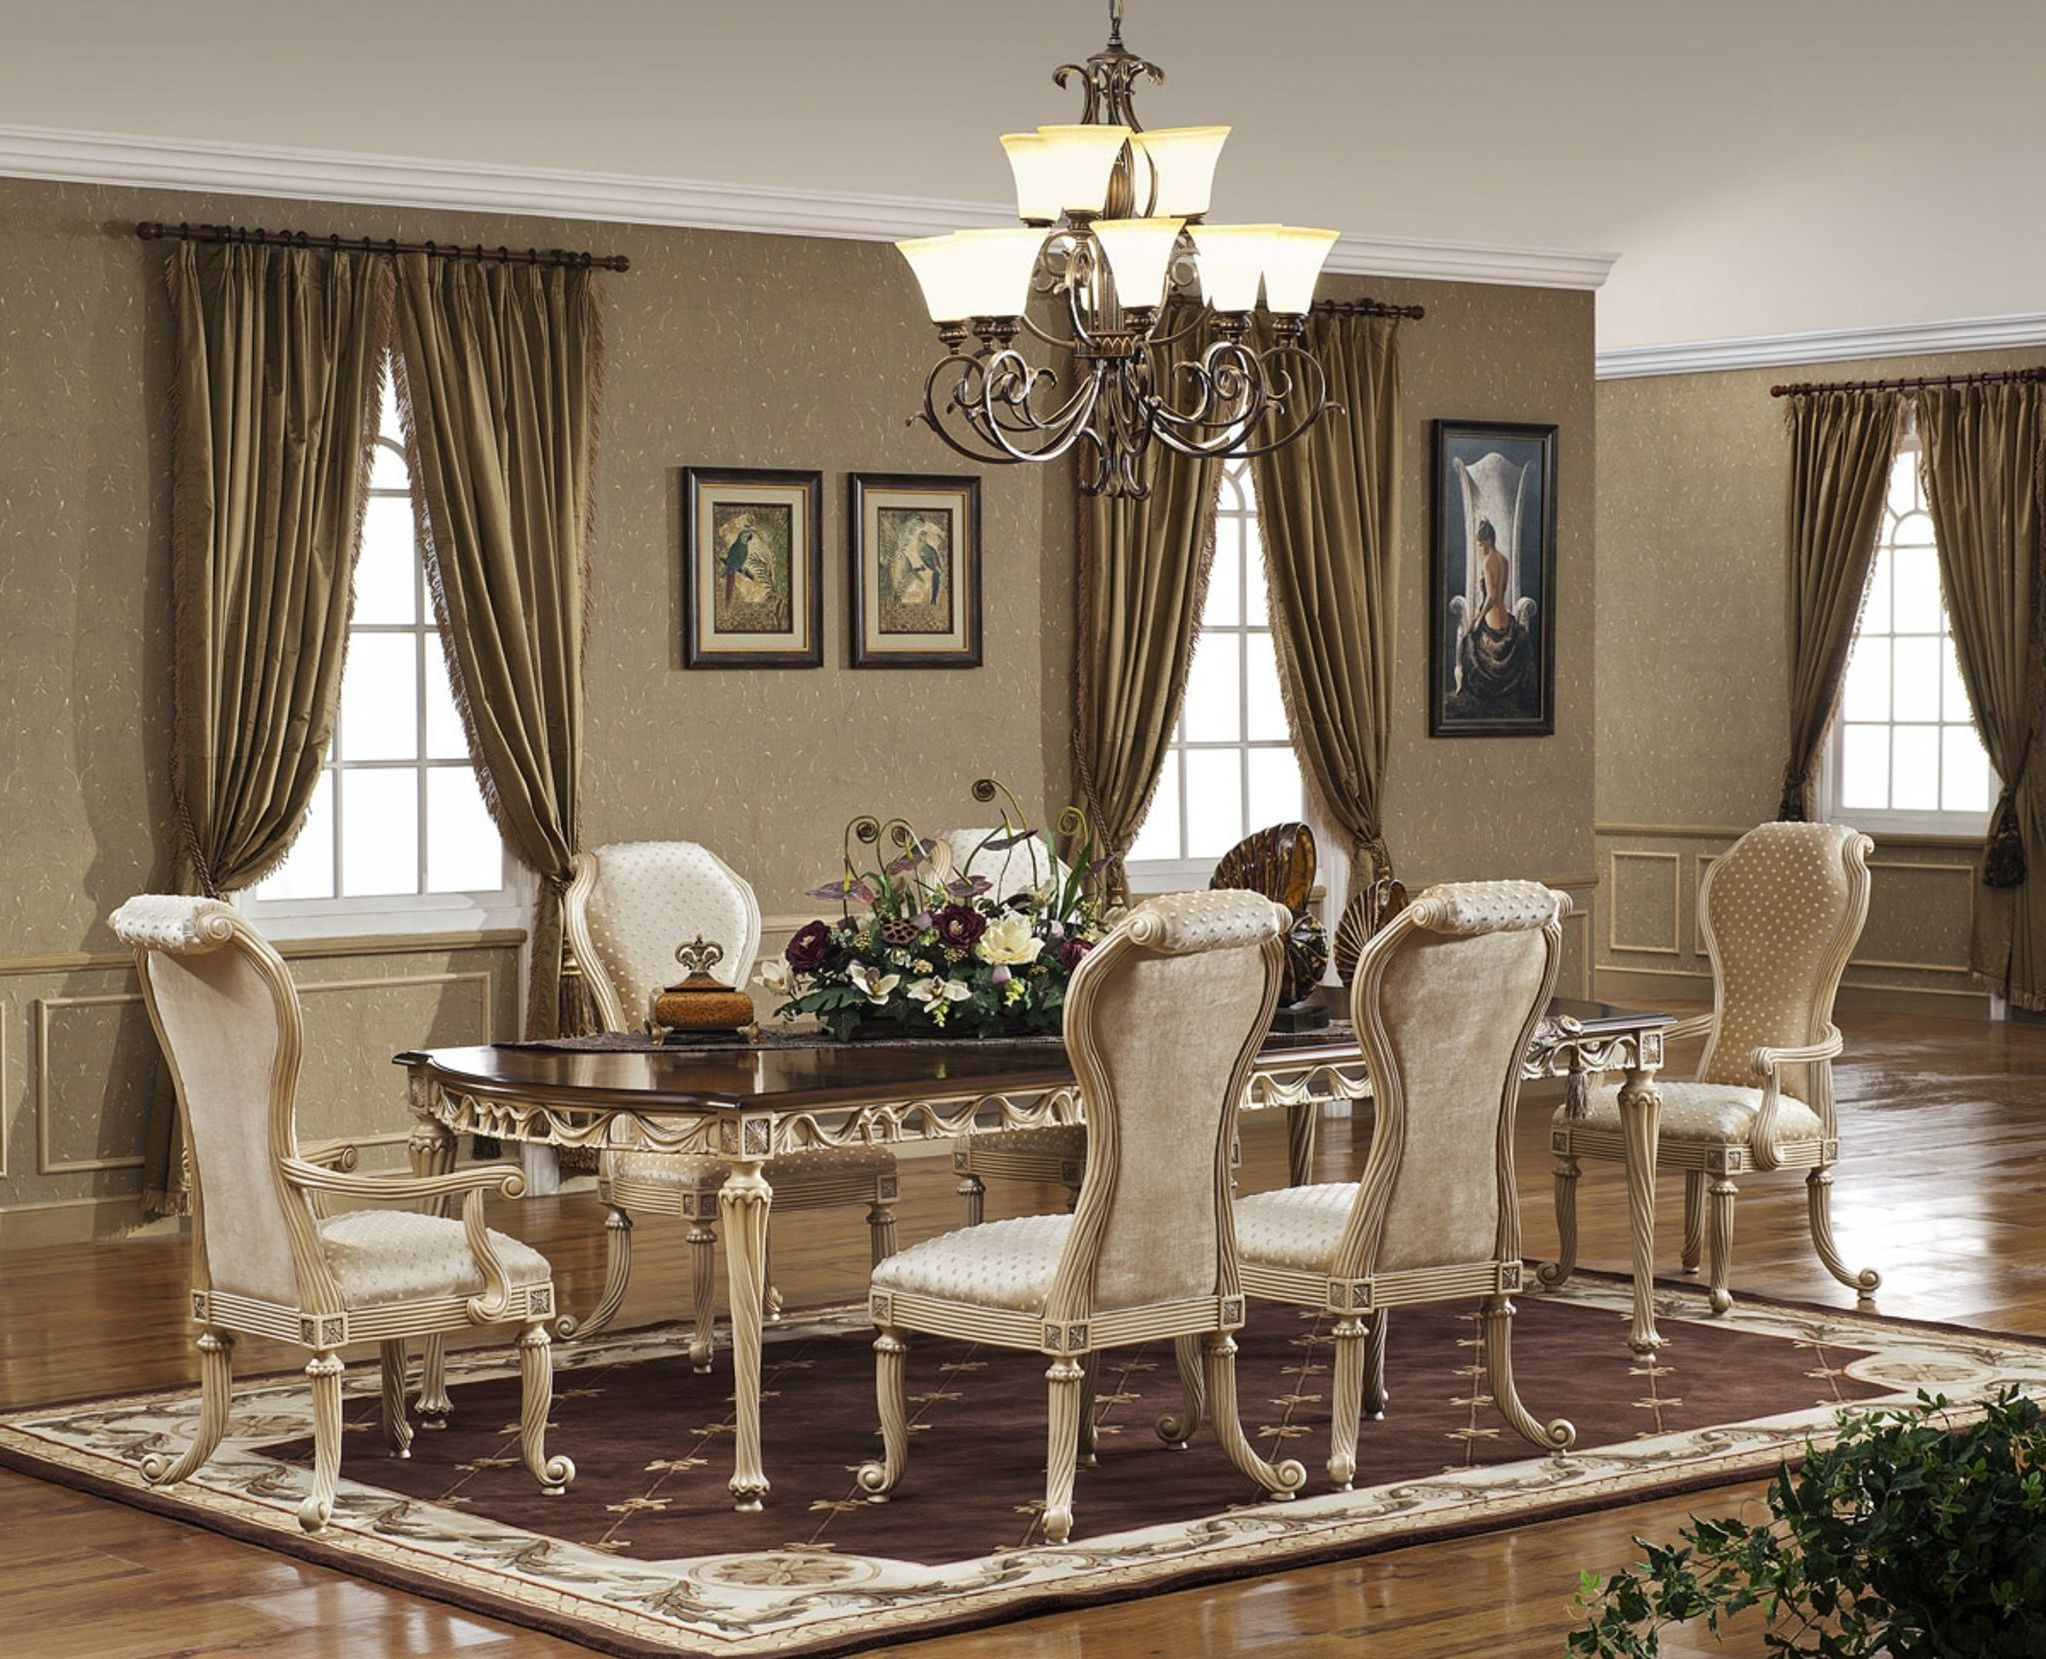 Décor For Formal Dining Room Designs Part 51